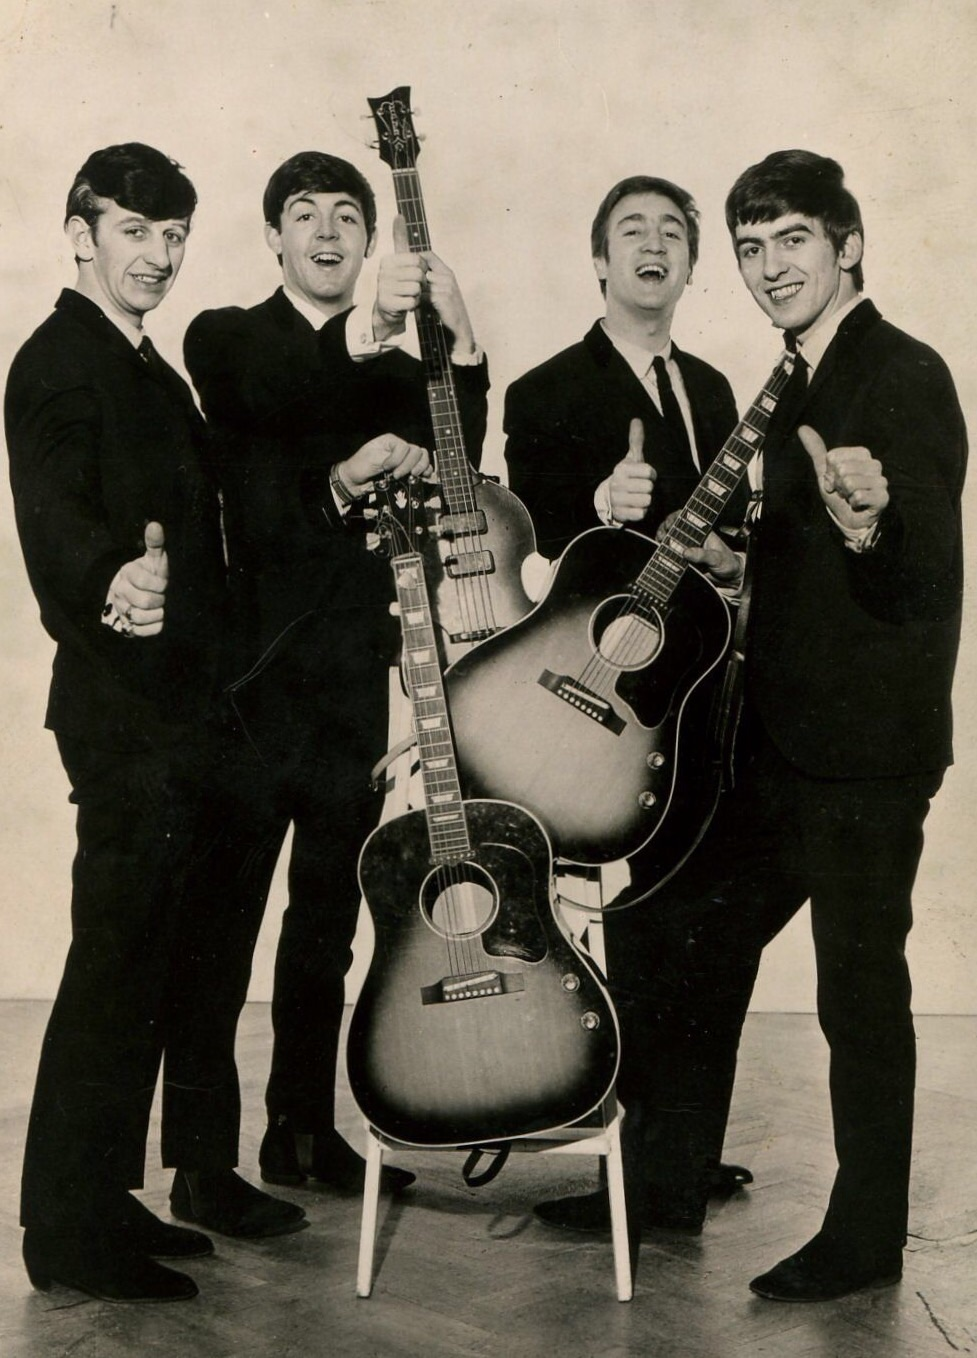 The Beatles posing with their guitars, circa 1962. Photo by Dezo Hoffman.